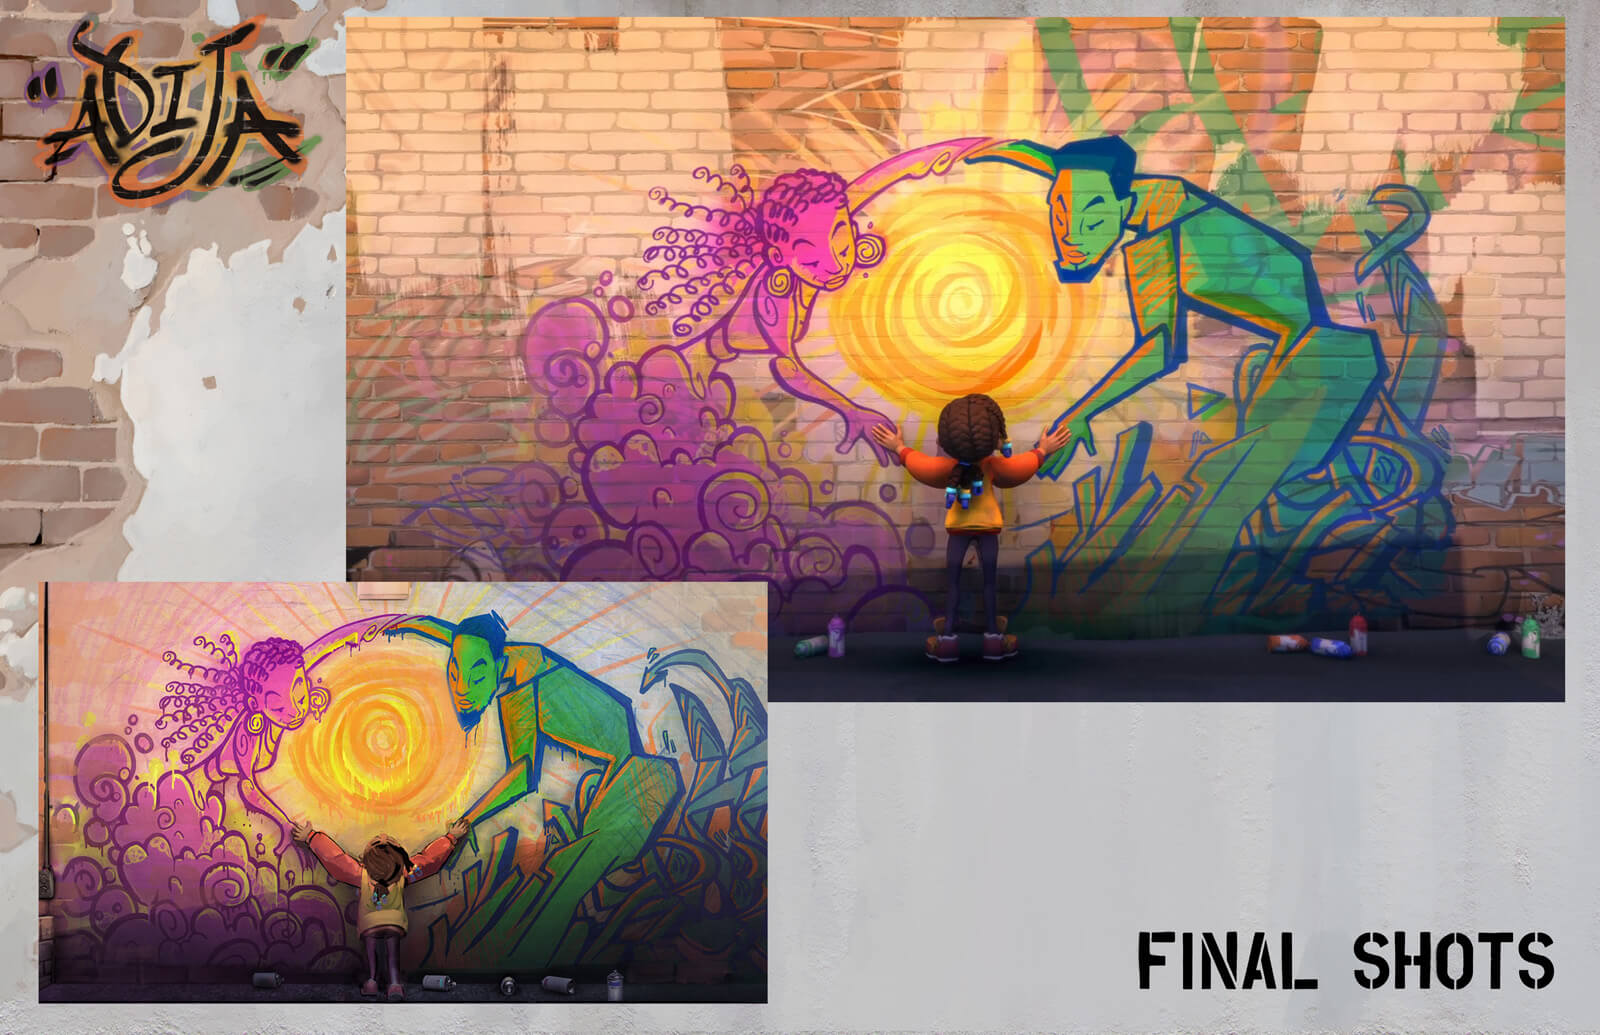 Side-by-side comparison of concept and final shot of young girl standing against wall full of the spray-painted art she made